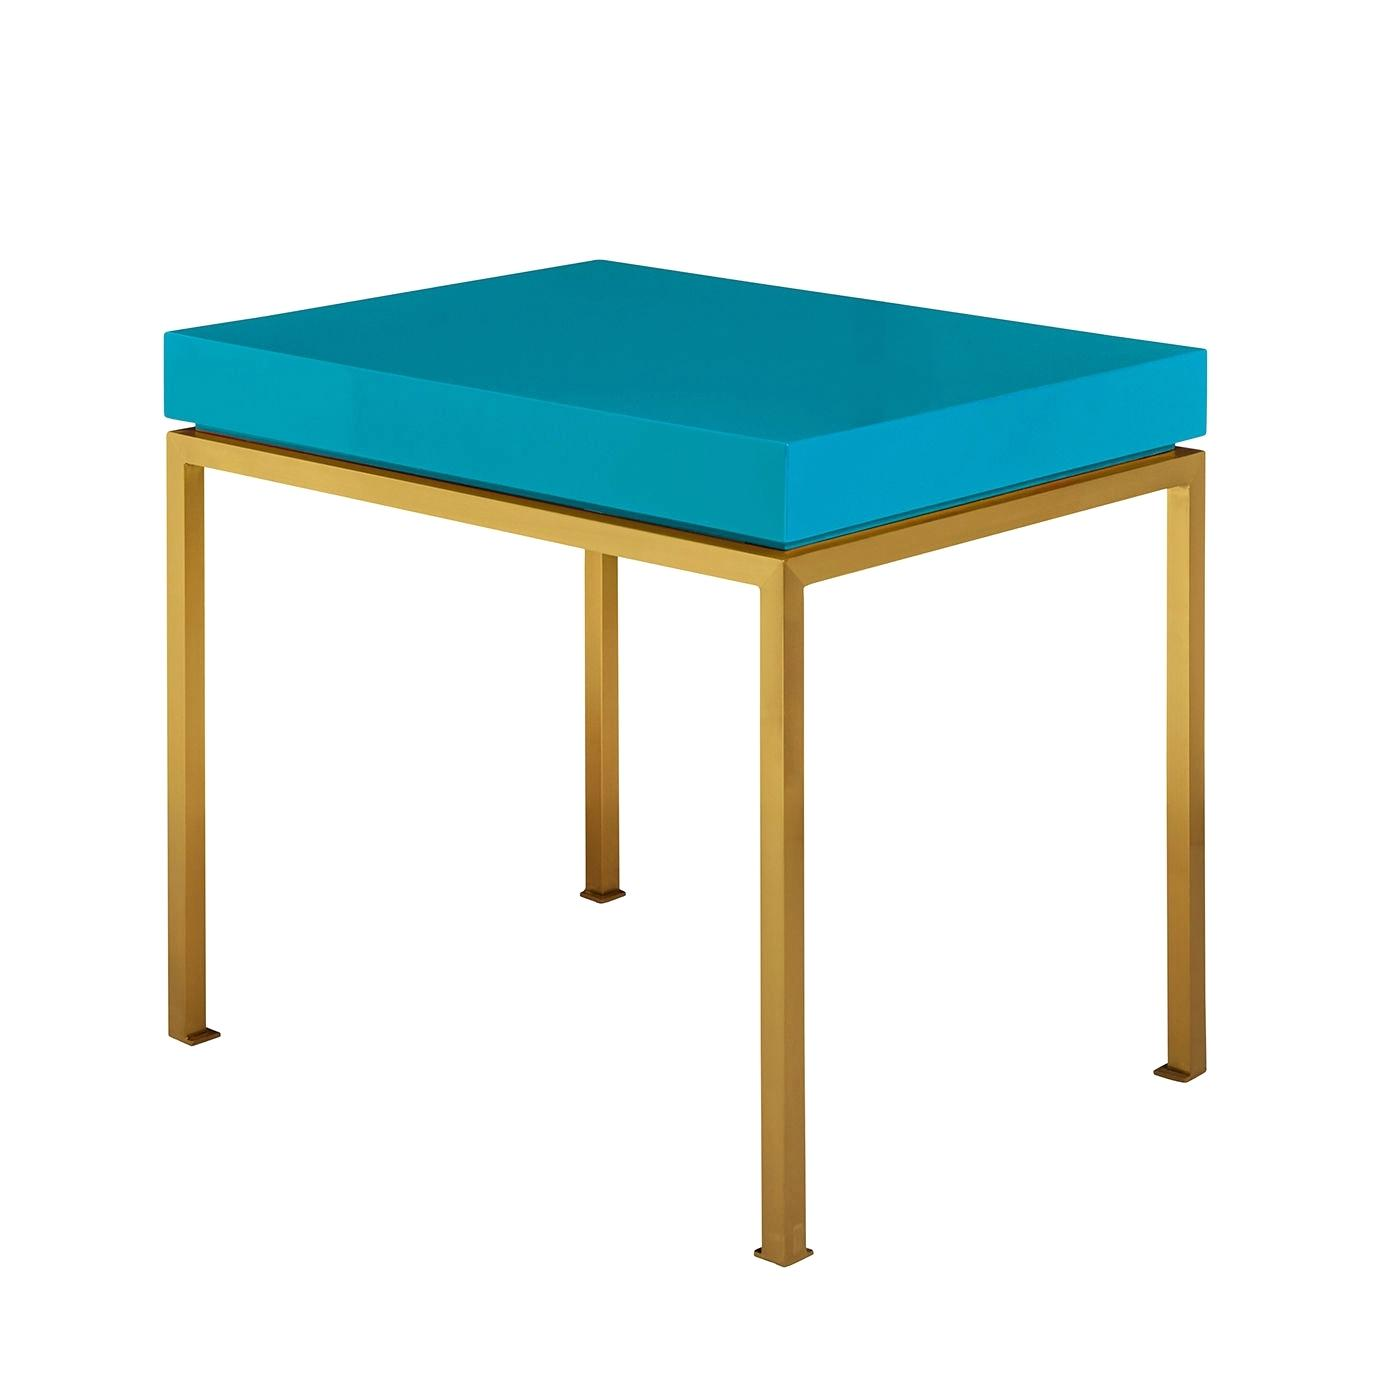 turquoise accent table skinny brilliant narrow end tables tall round side alt distressed inch console square glass coffee west elm dresser contemporary chairs little patio outdoor